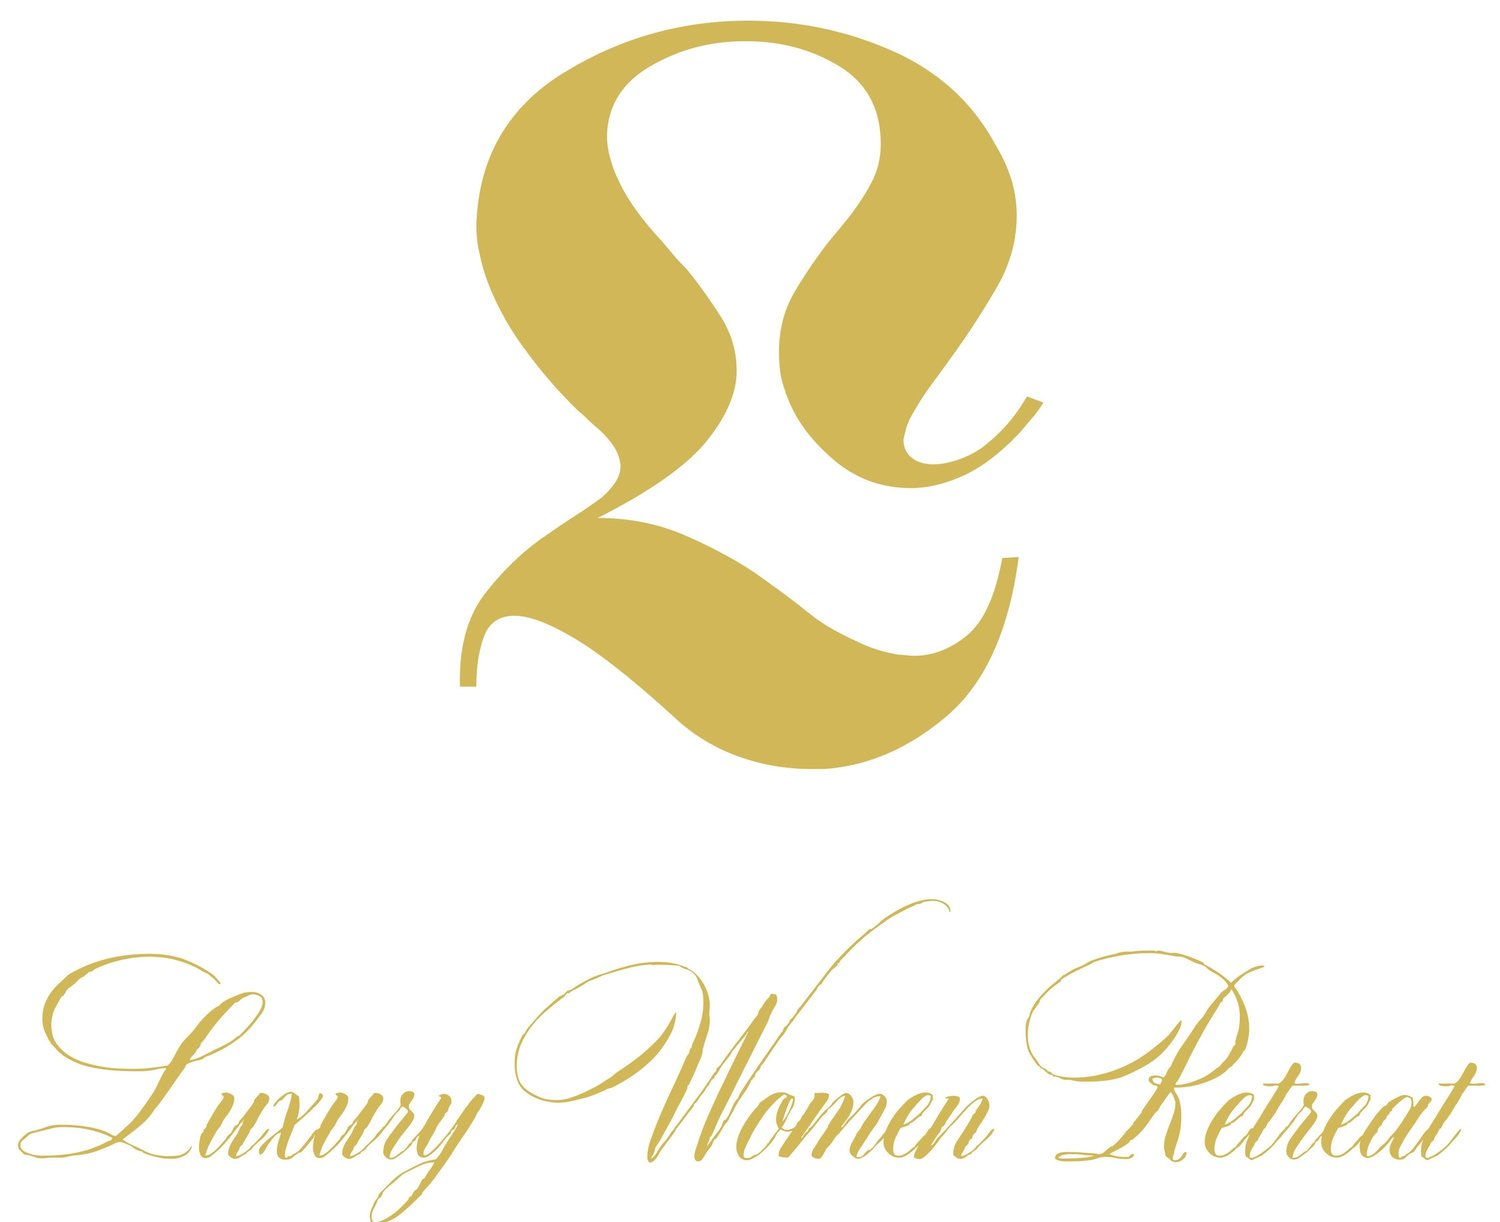 Luxury Women Retreat